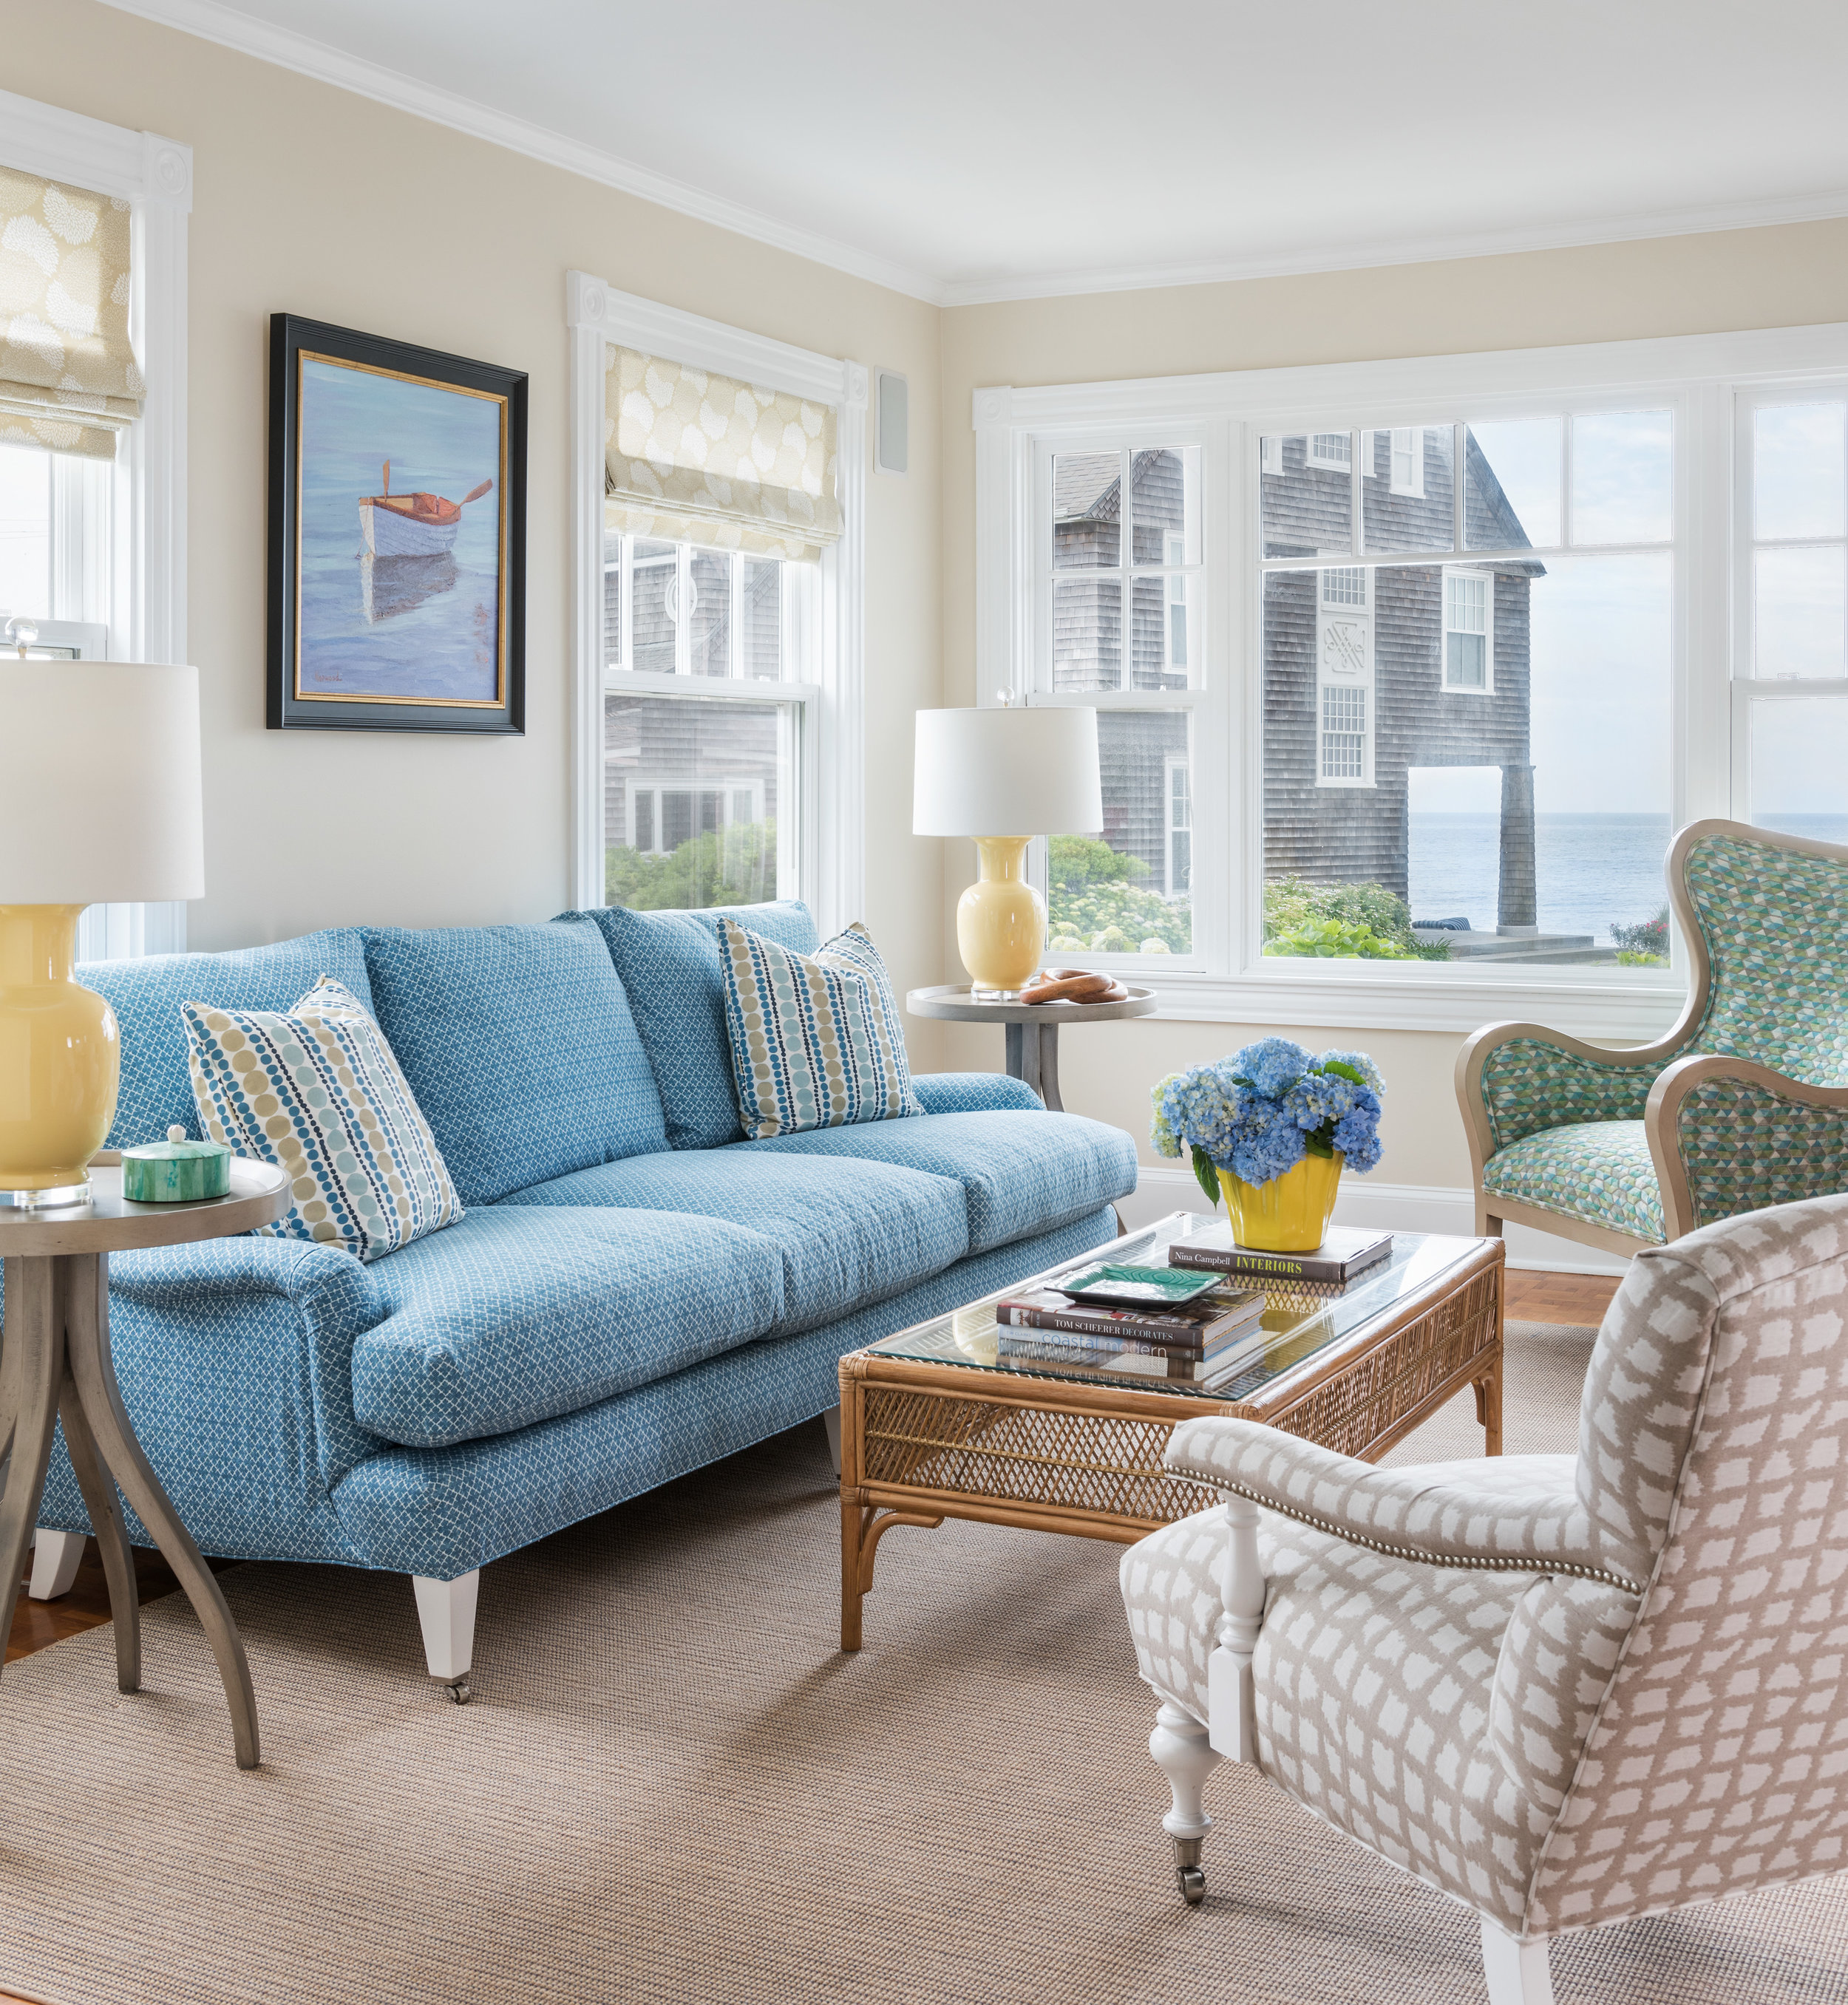 interior design, living room, blue couch, boat painting, ocean view, beach design, beach style